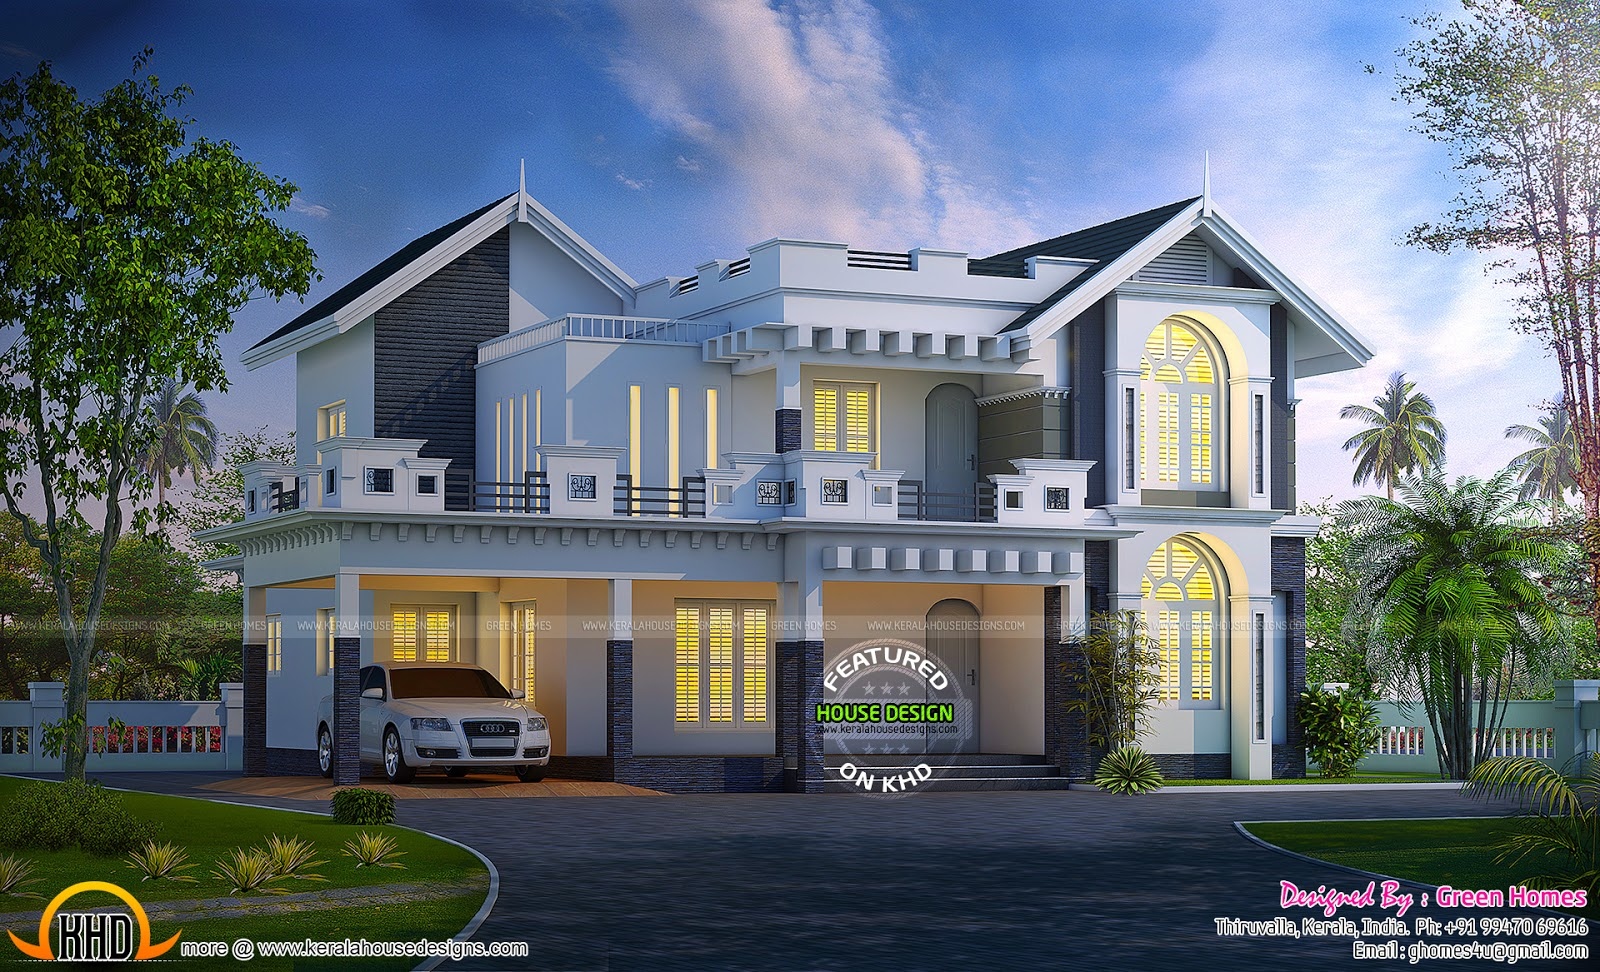 New Kerala House Plans For June 2015 Keralahousedesigns